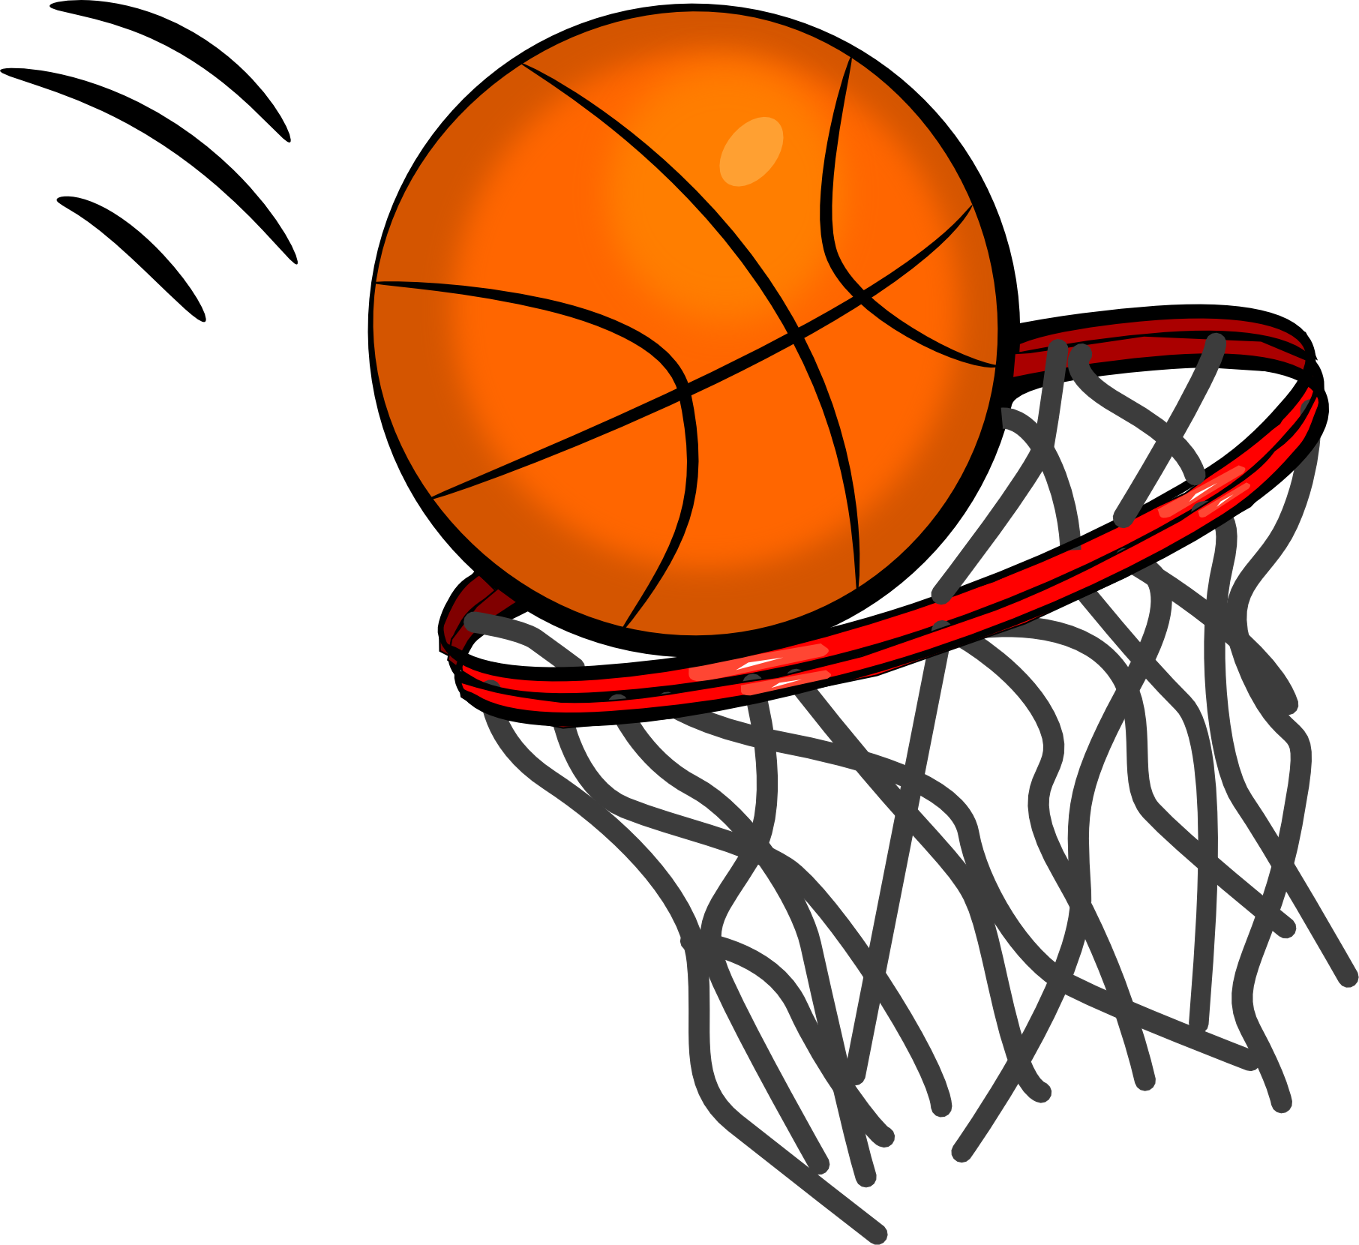 Basketball clipart basketball hoop. Free